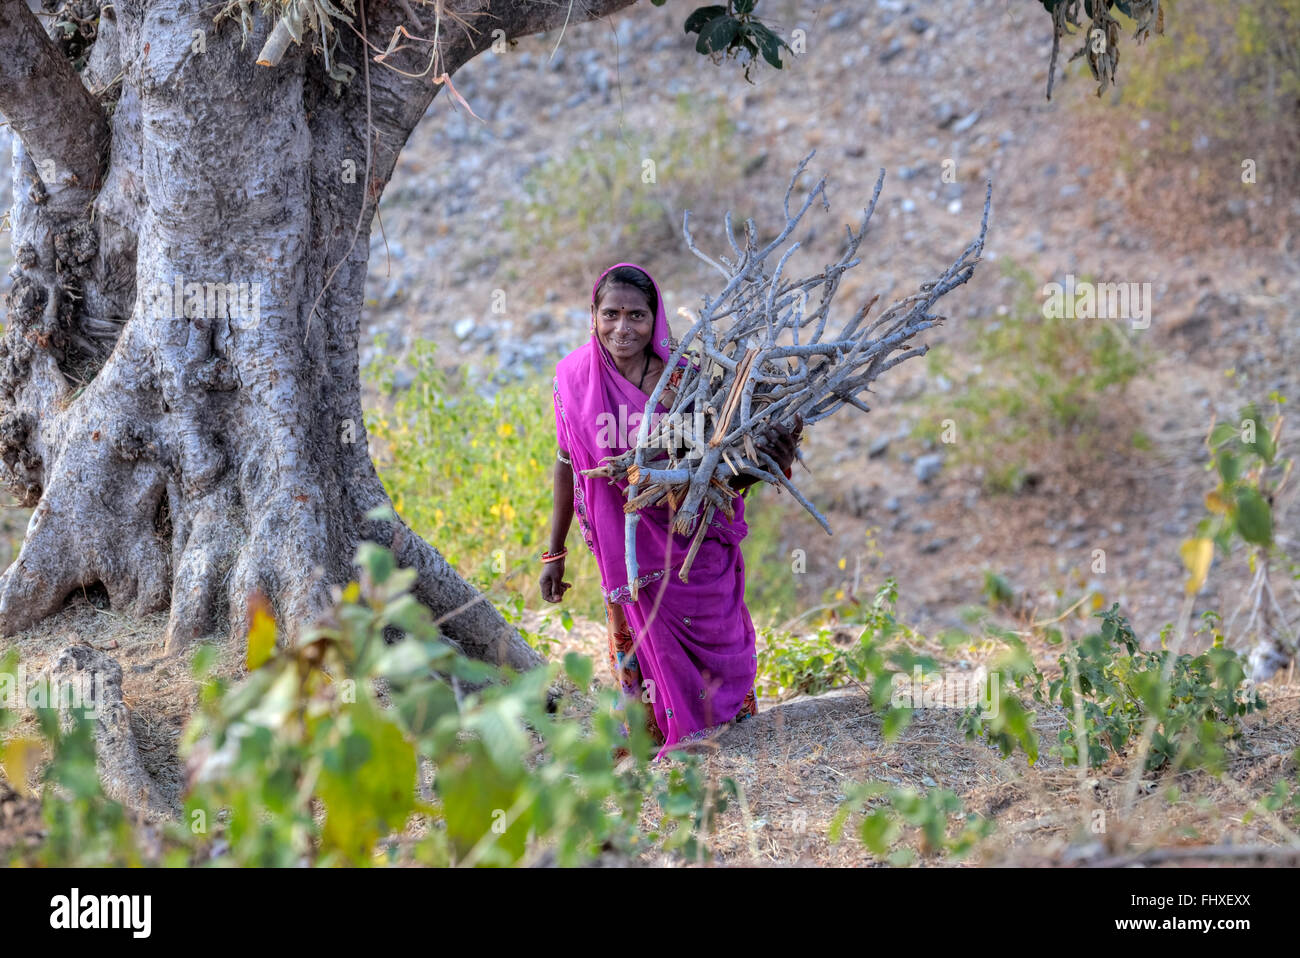 woman carrying firewood in rural Rajasthan, India - Stock Image